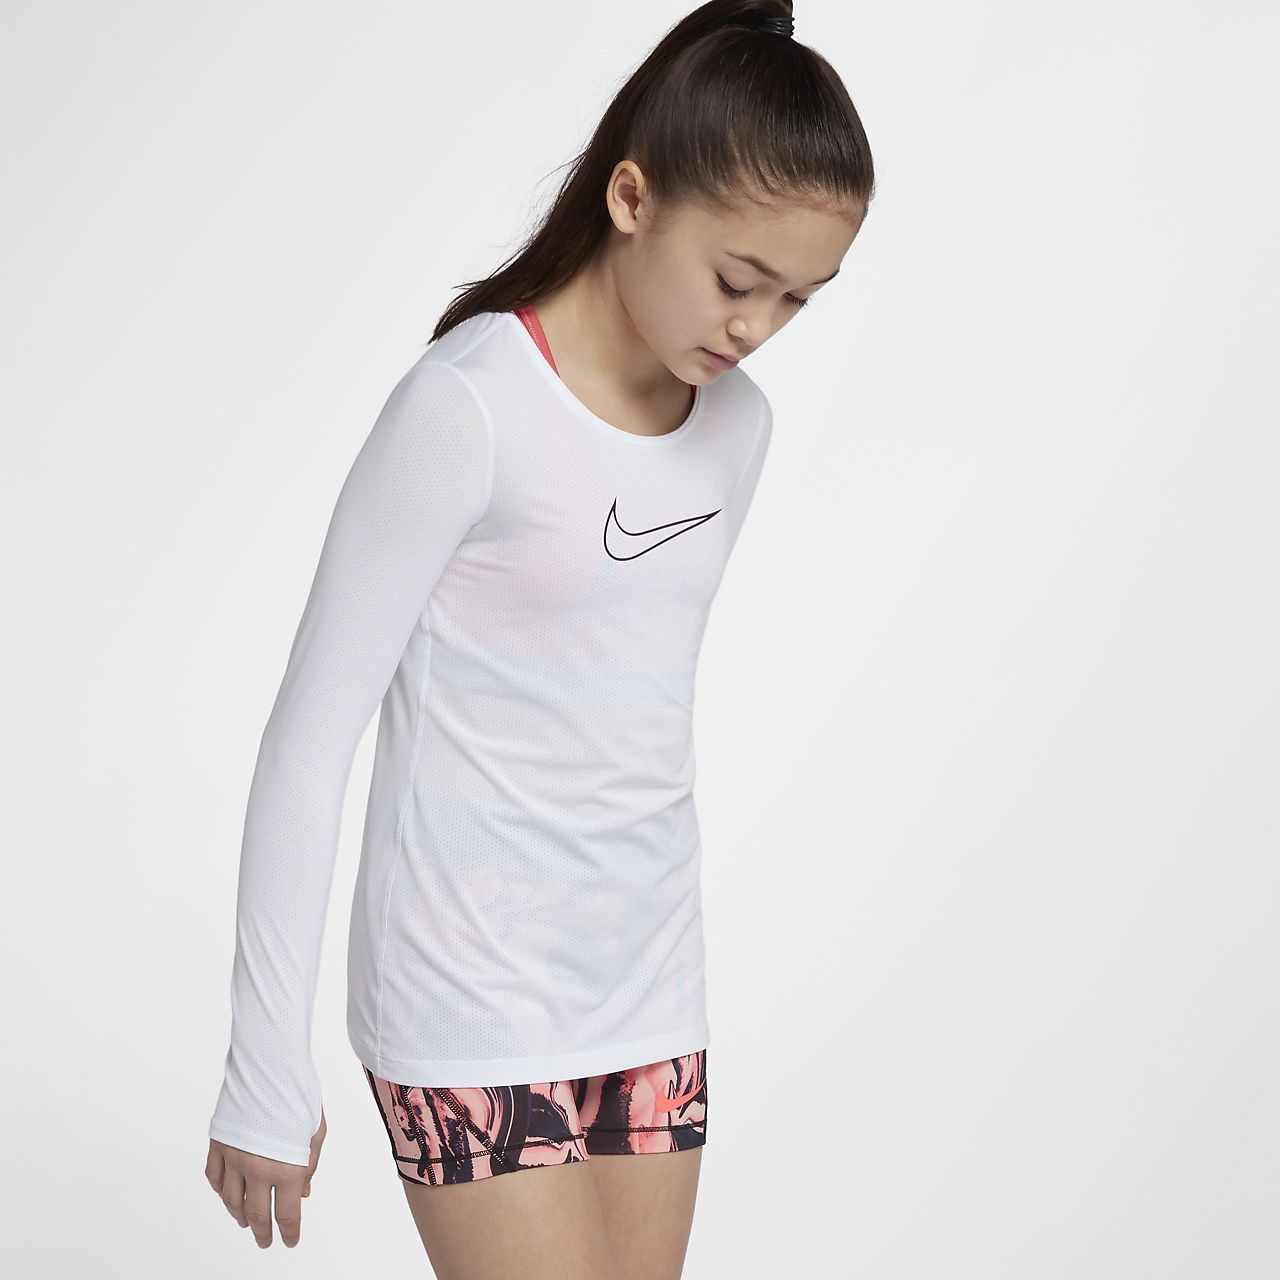 f921cdc8a9 Girls Shirts Nike Childrens Pro Long Sleeve Top